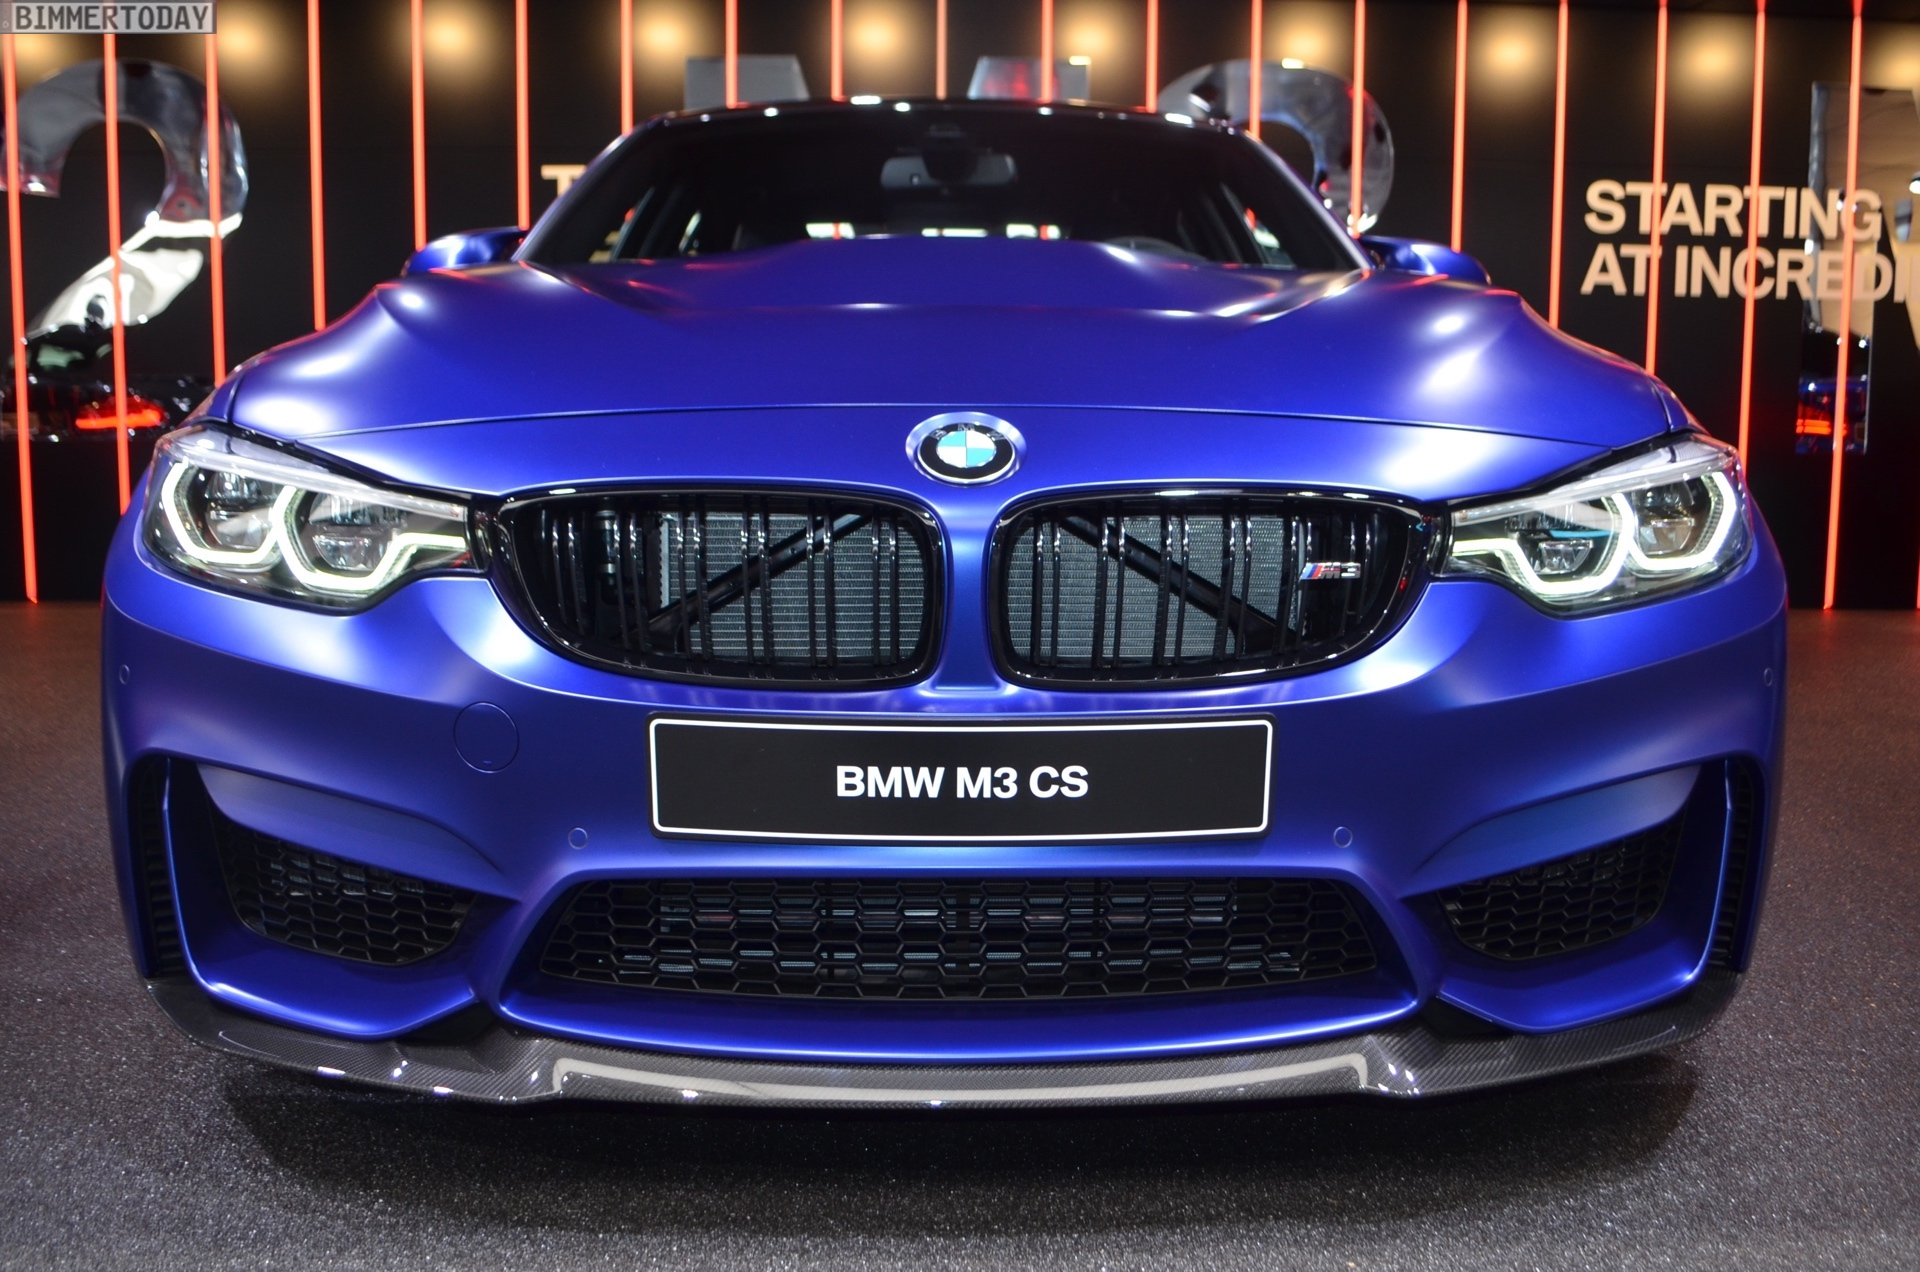 2018 Geneva Live Photos Of The Bmw M3 Cs F80 In Frozen